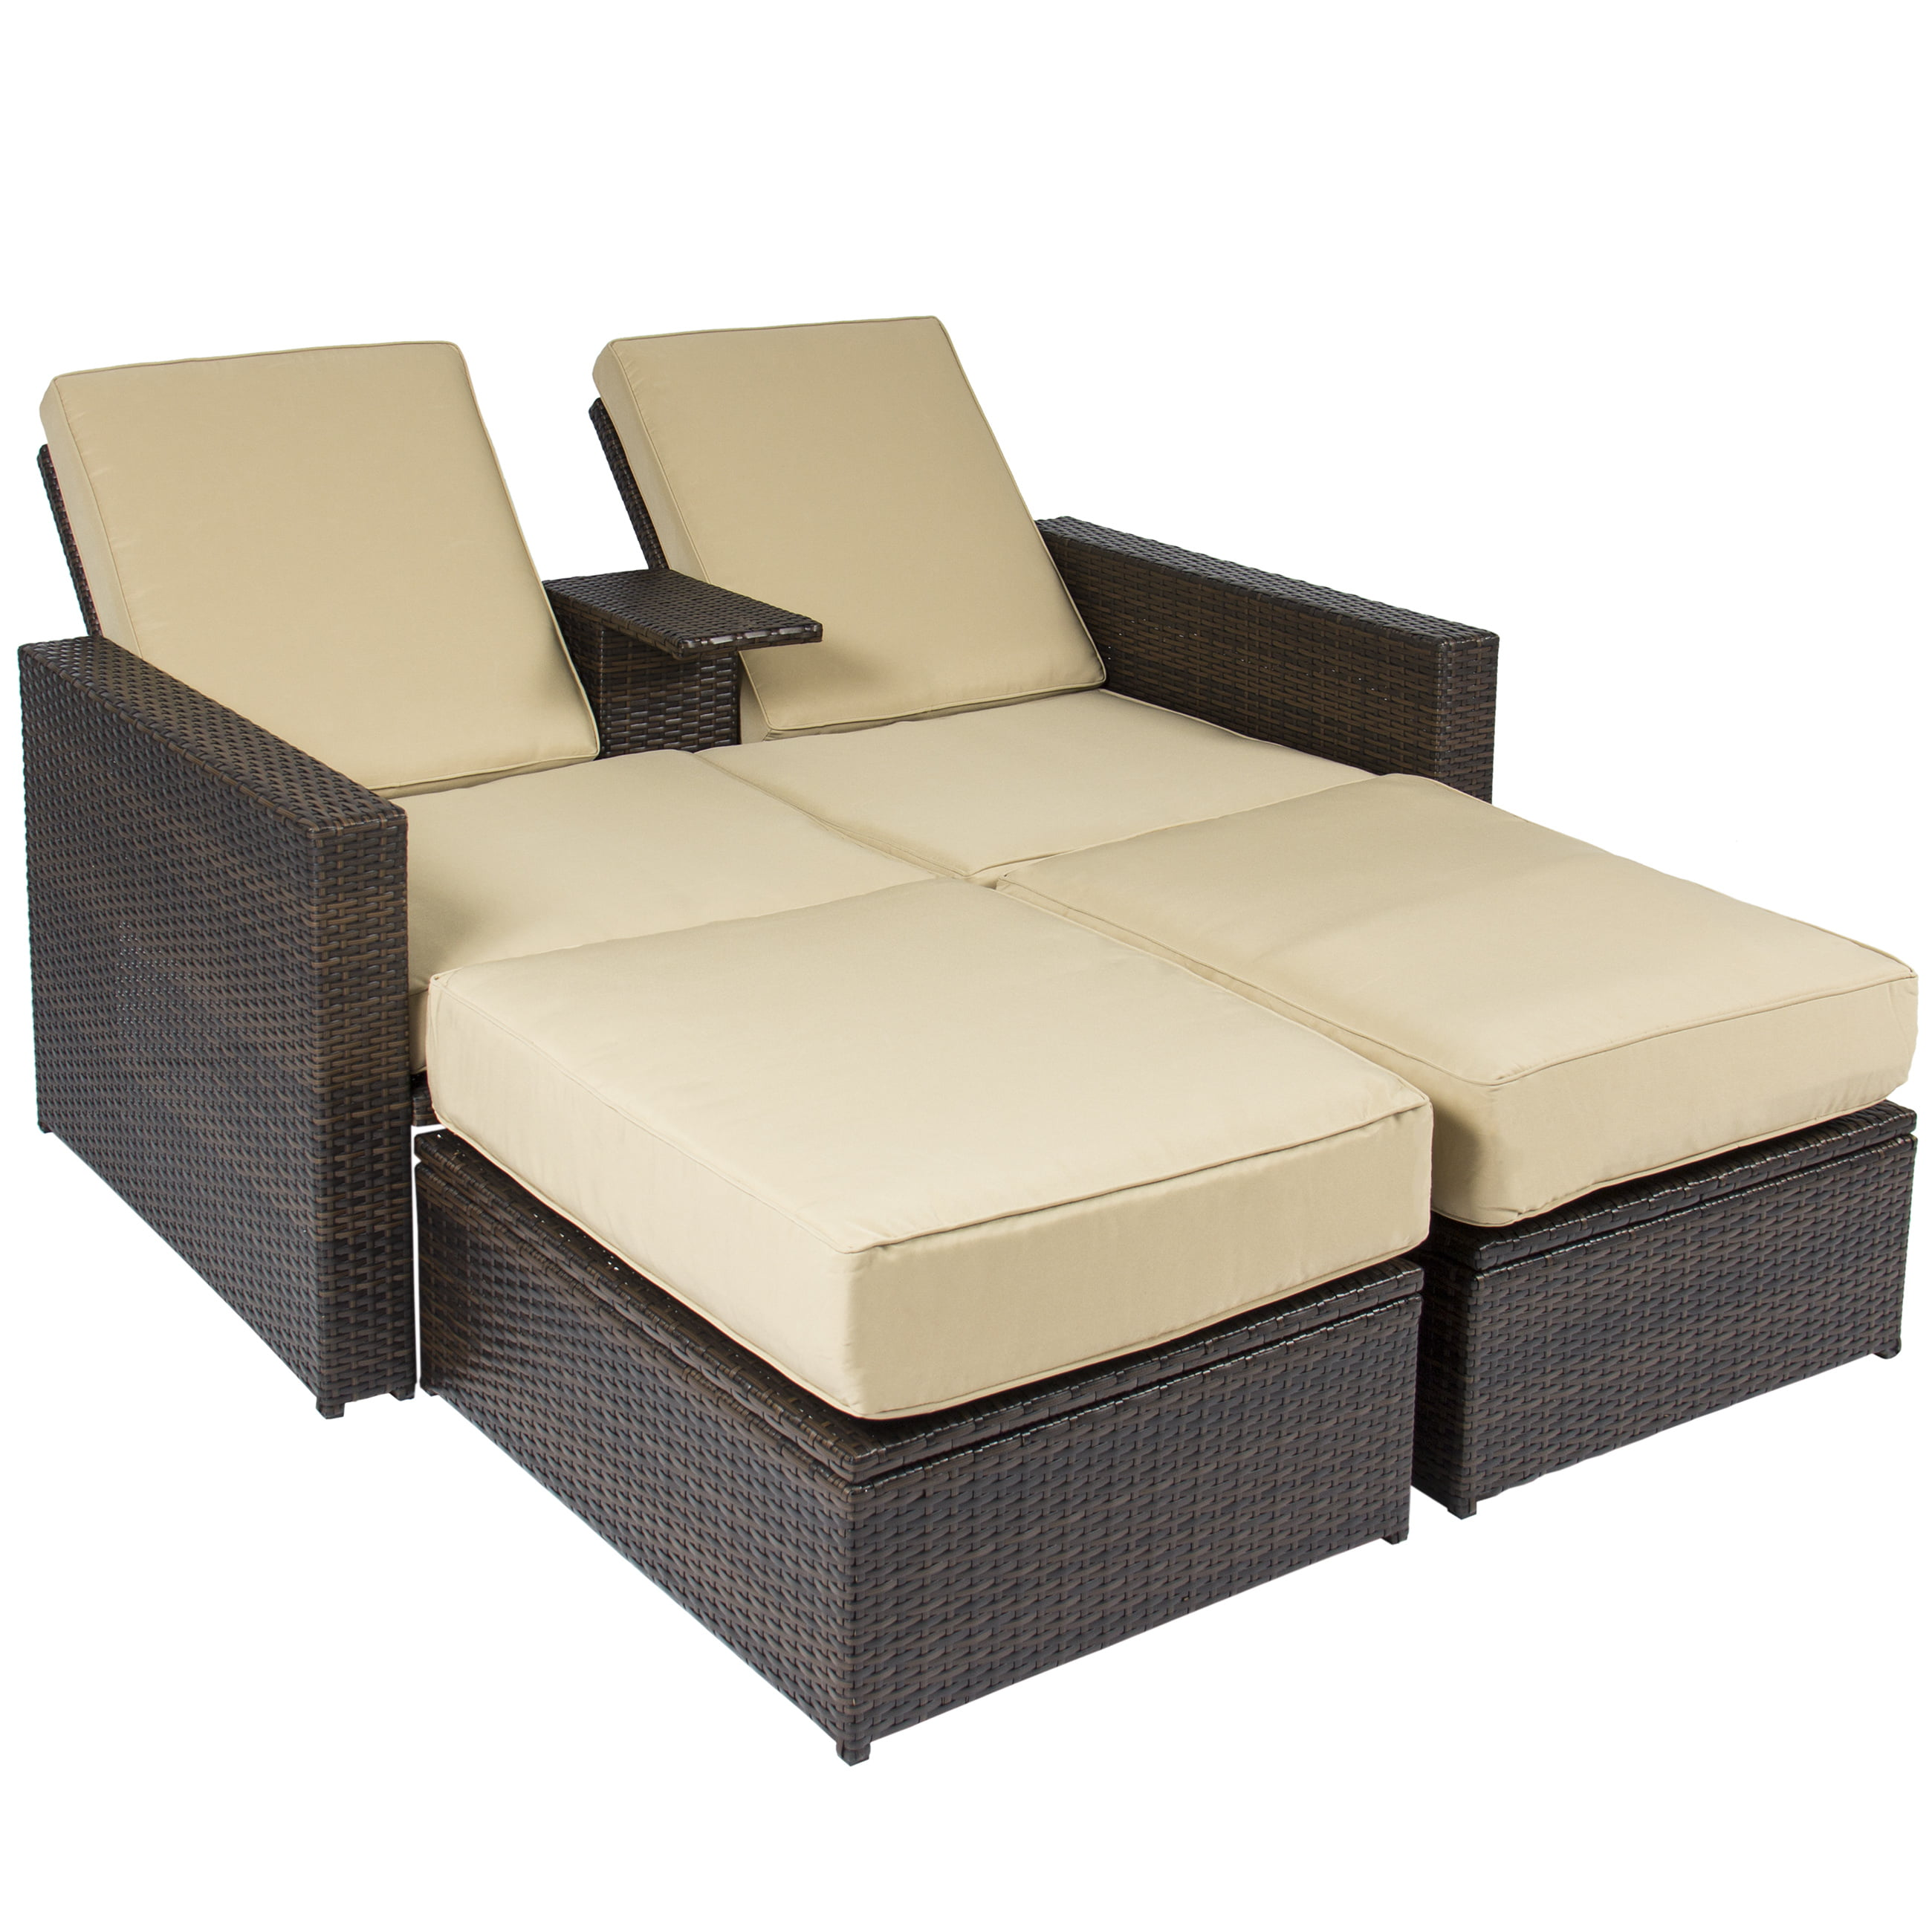 Baner Garden Outdoor Furniture Complete Patio PE Wicker Rattan - Wicker patio furniture sets